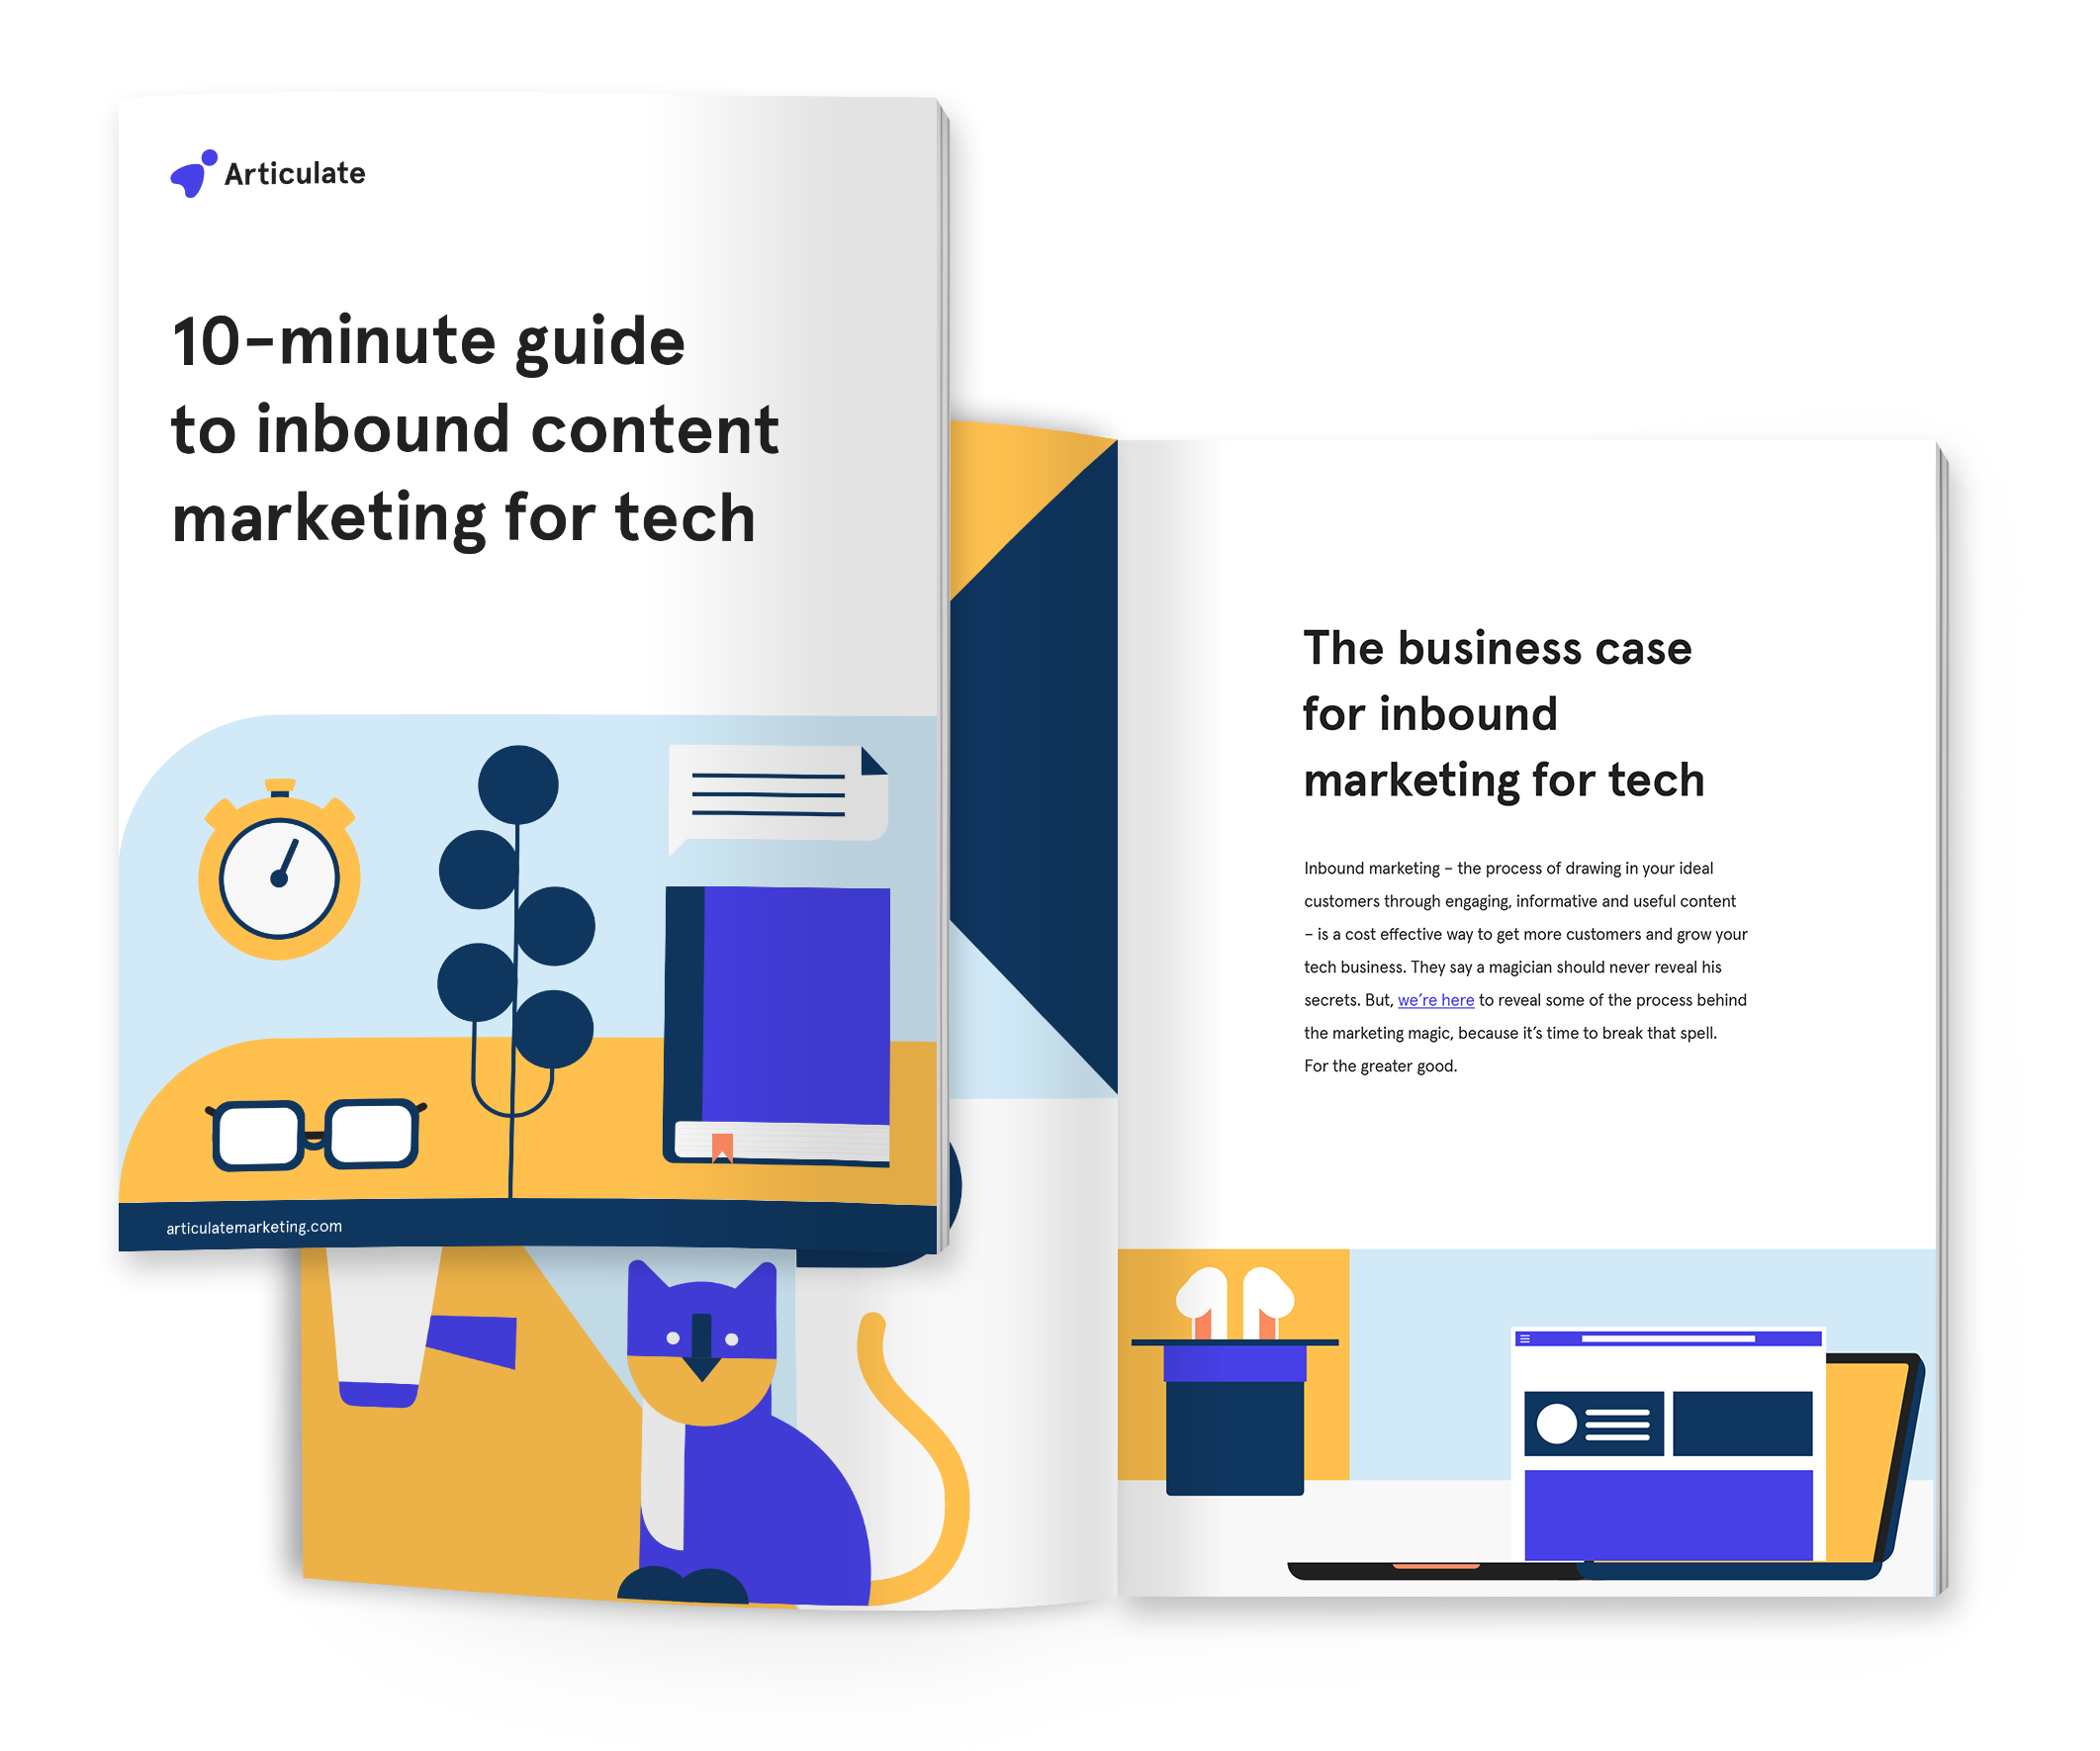 10-minute guide to inbound content marketing for tech